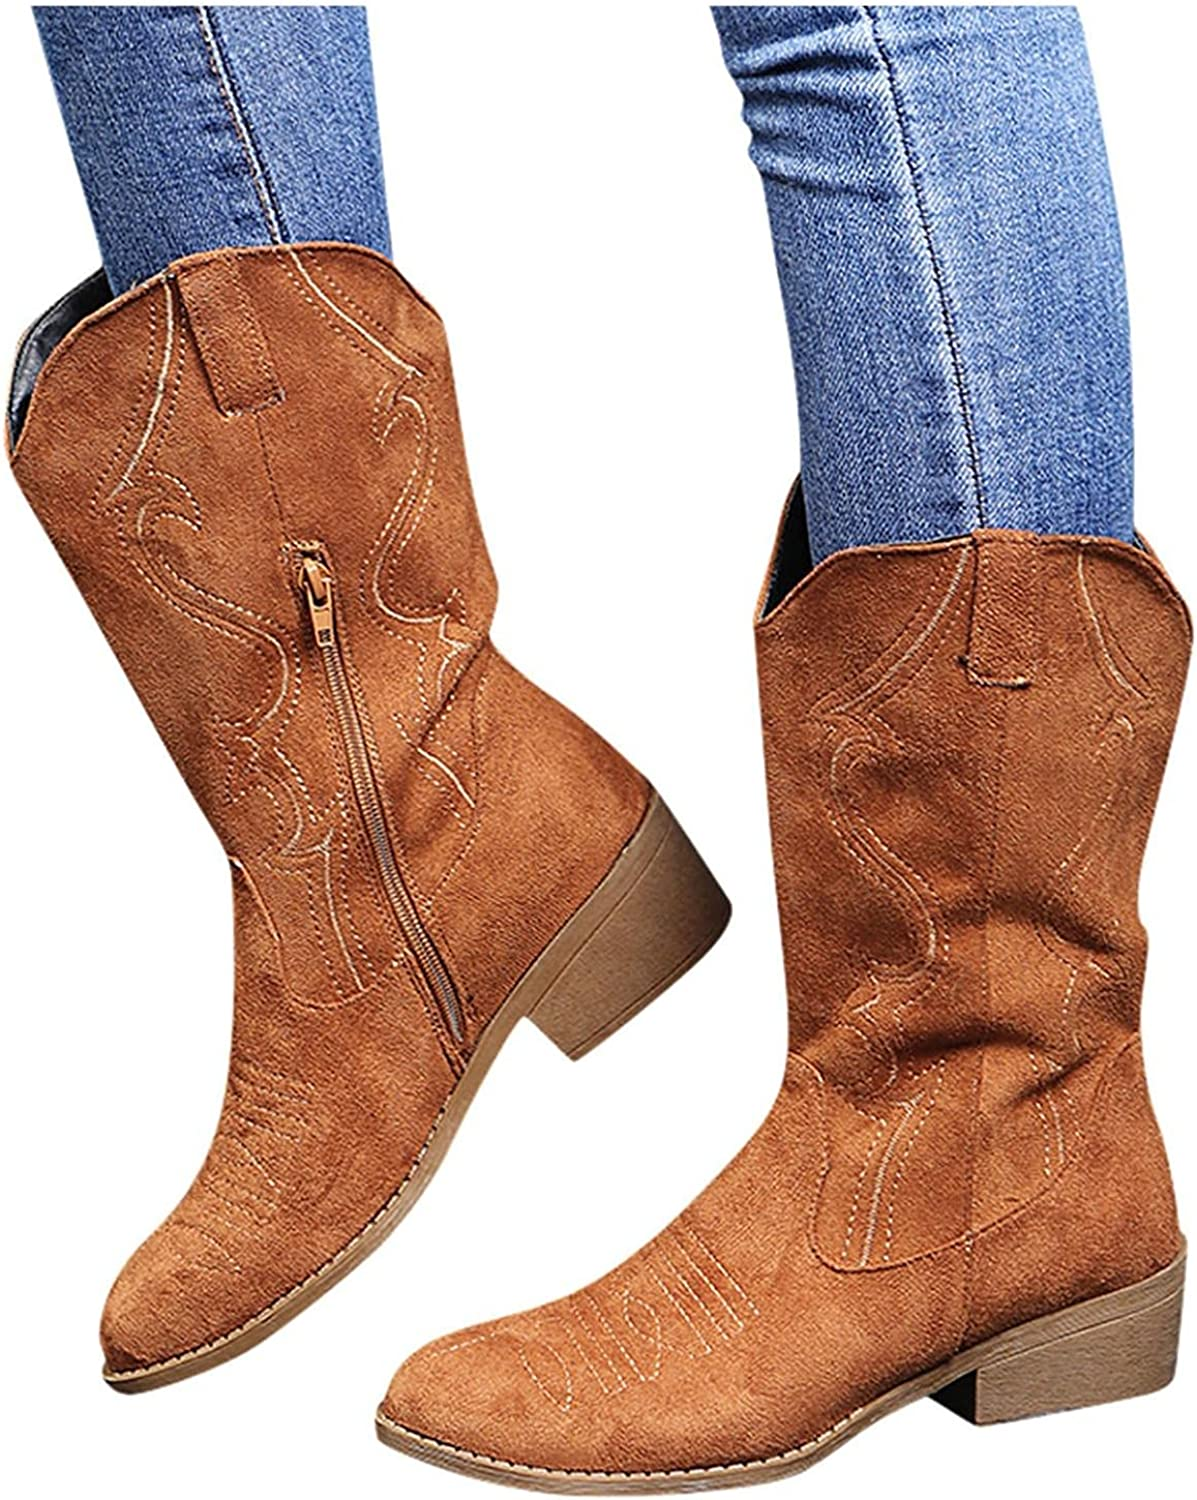 Cowboy Boots for Women Vintage Embroidery Round Toe Ankle Booties Mid Calf Motorcycle Boots Cowgirl Western Boots